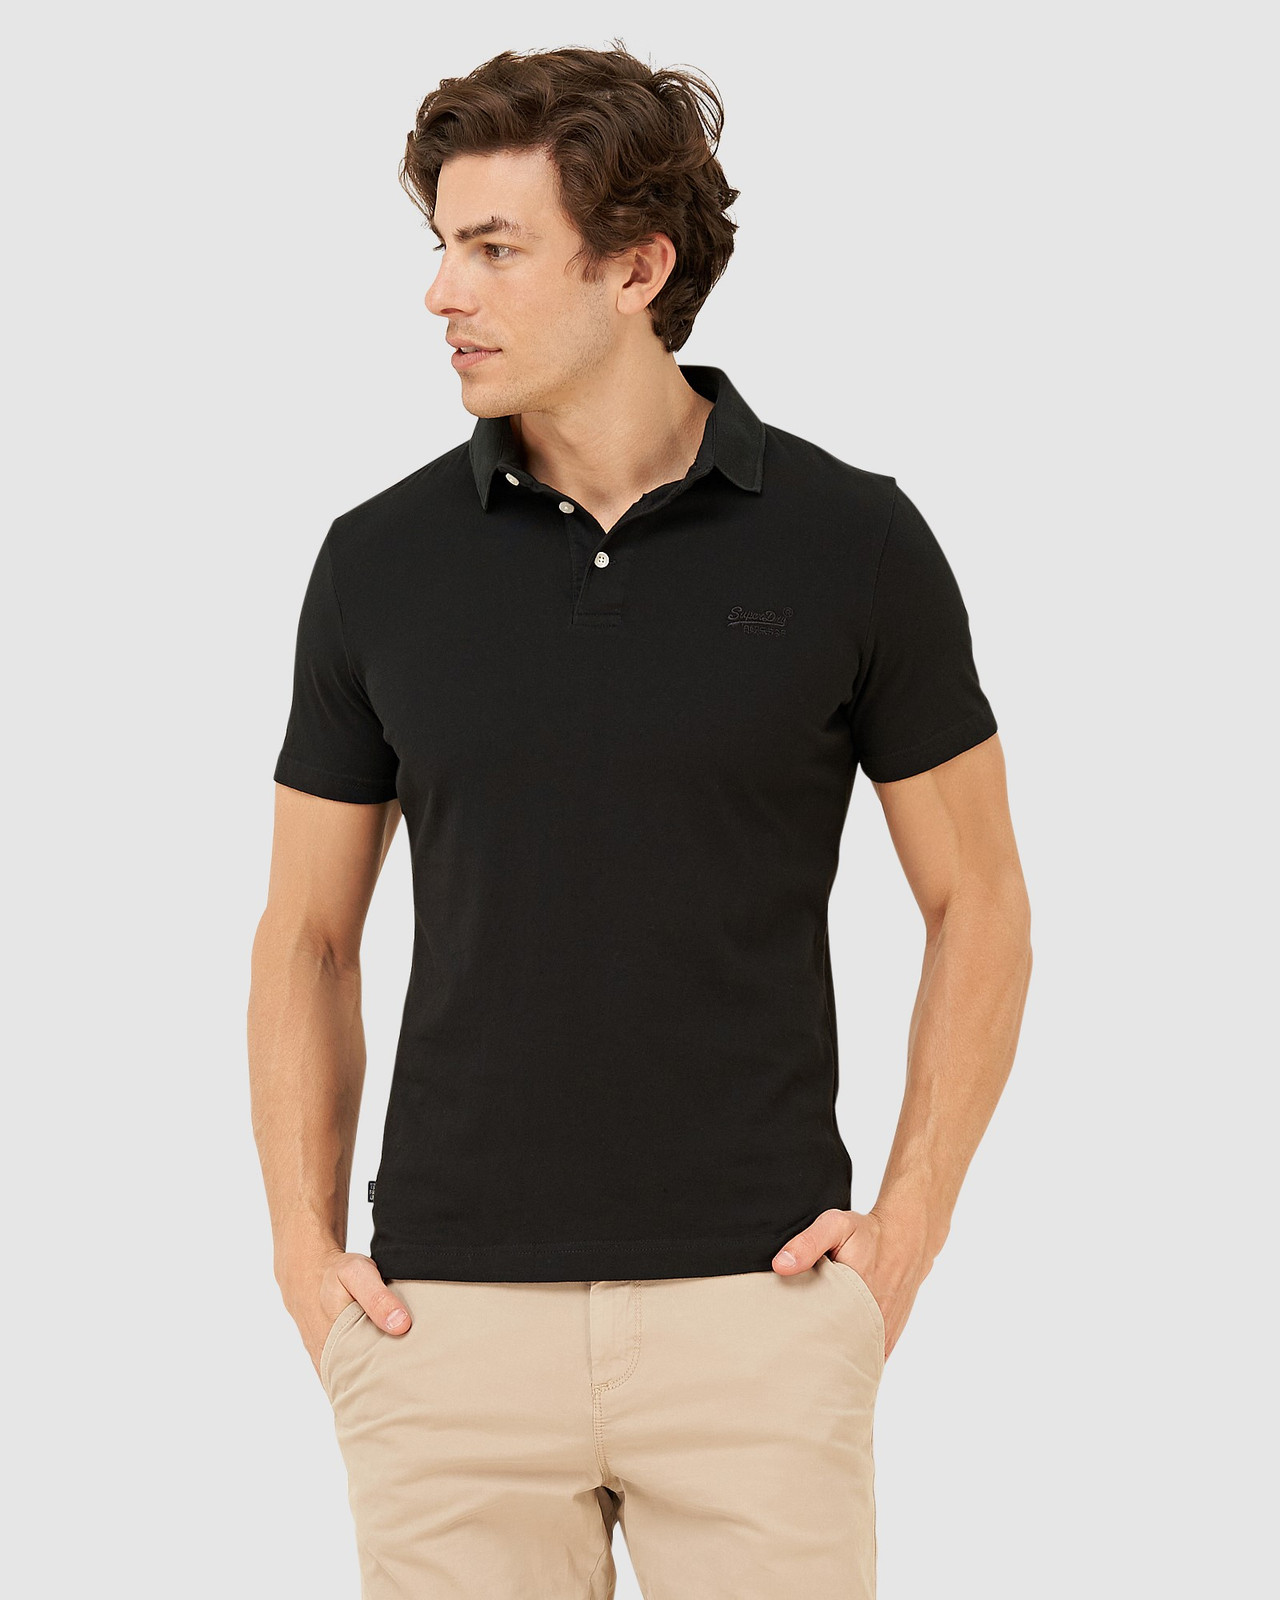 Superdry Mens ORANGE LABEL JERSEY POLO Black Plain Polos 0